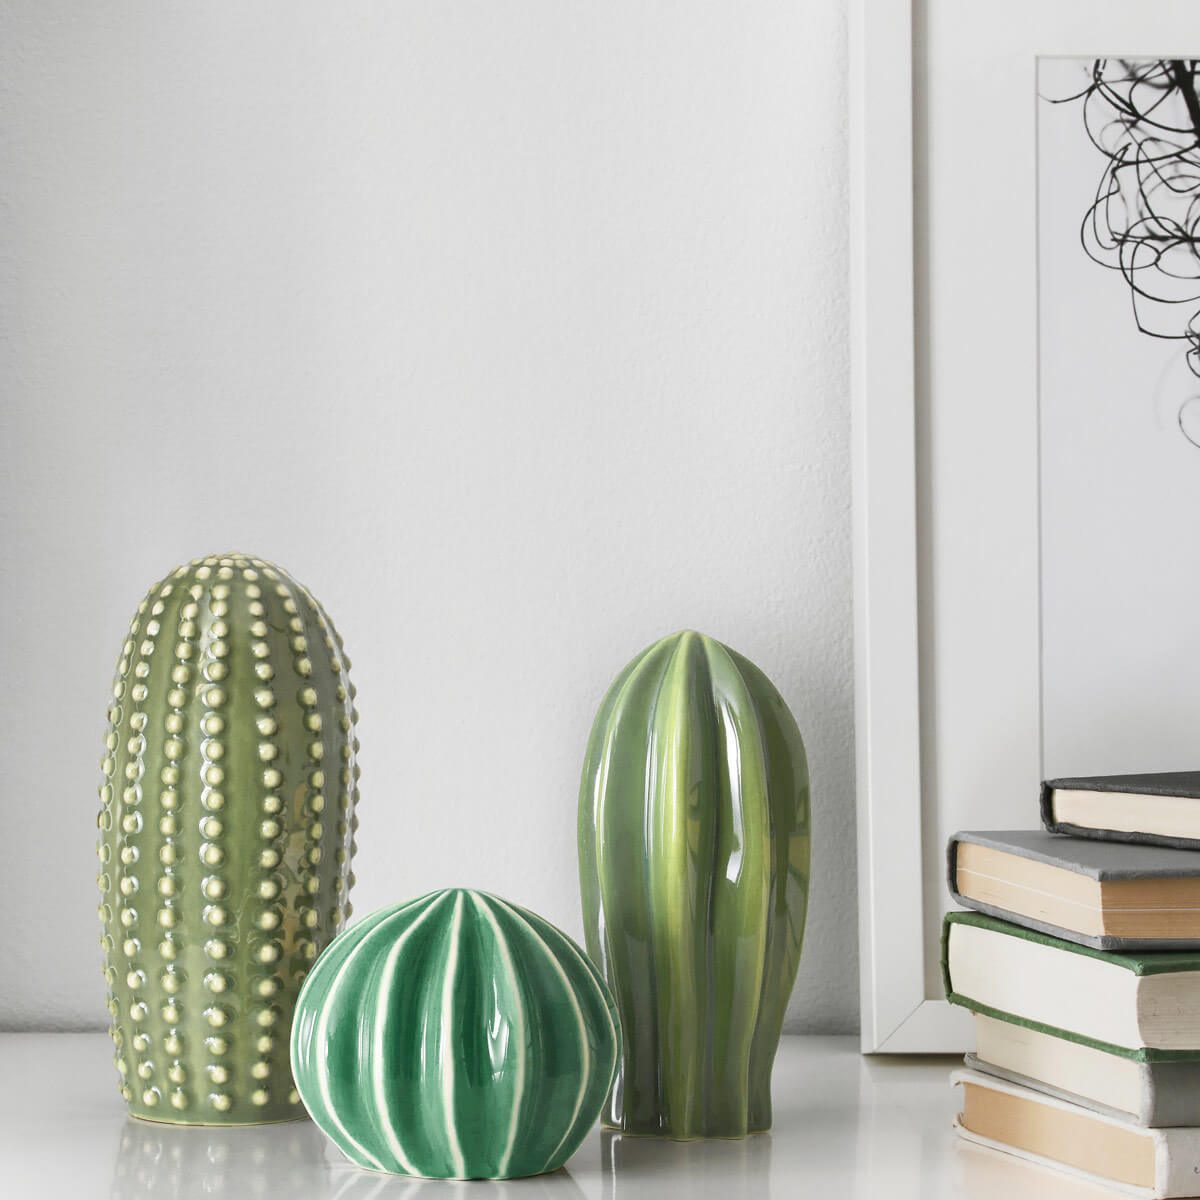 14 ways to decorate your home with cactus the family handyman. Black Bedroom Furniture Sets. Home Design Ideas